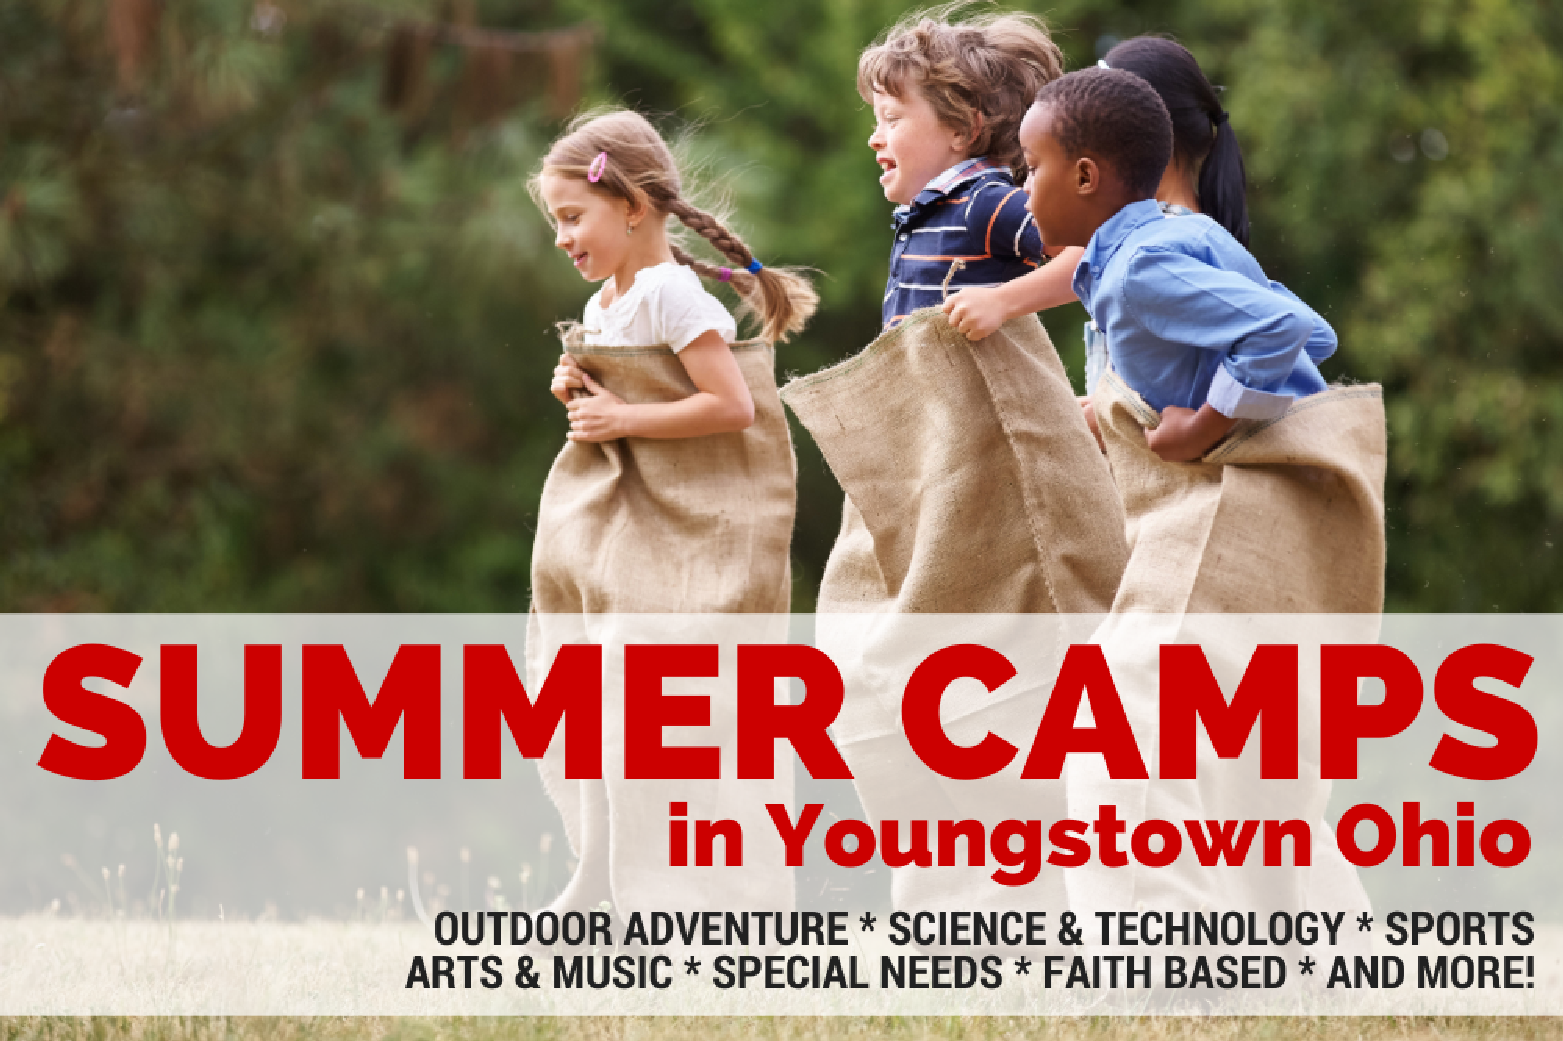 Summer Camps in Youngstown Ohio